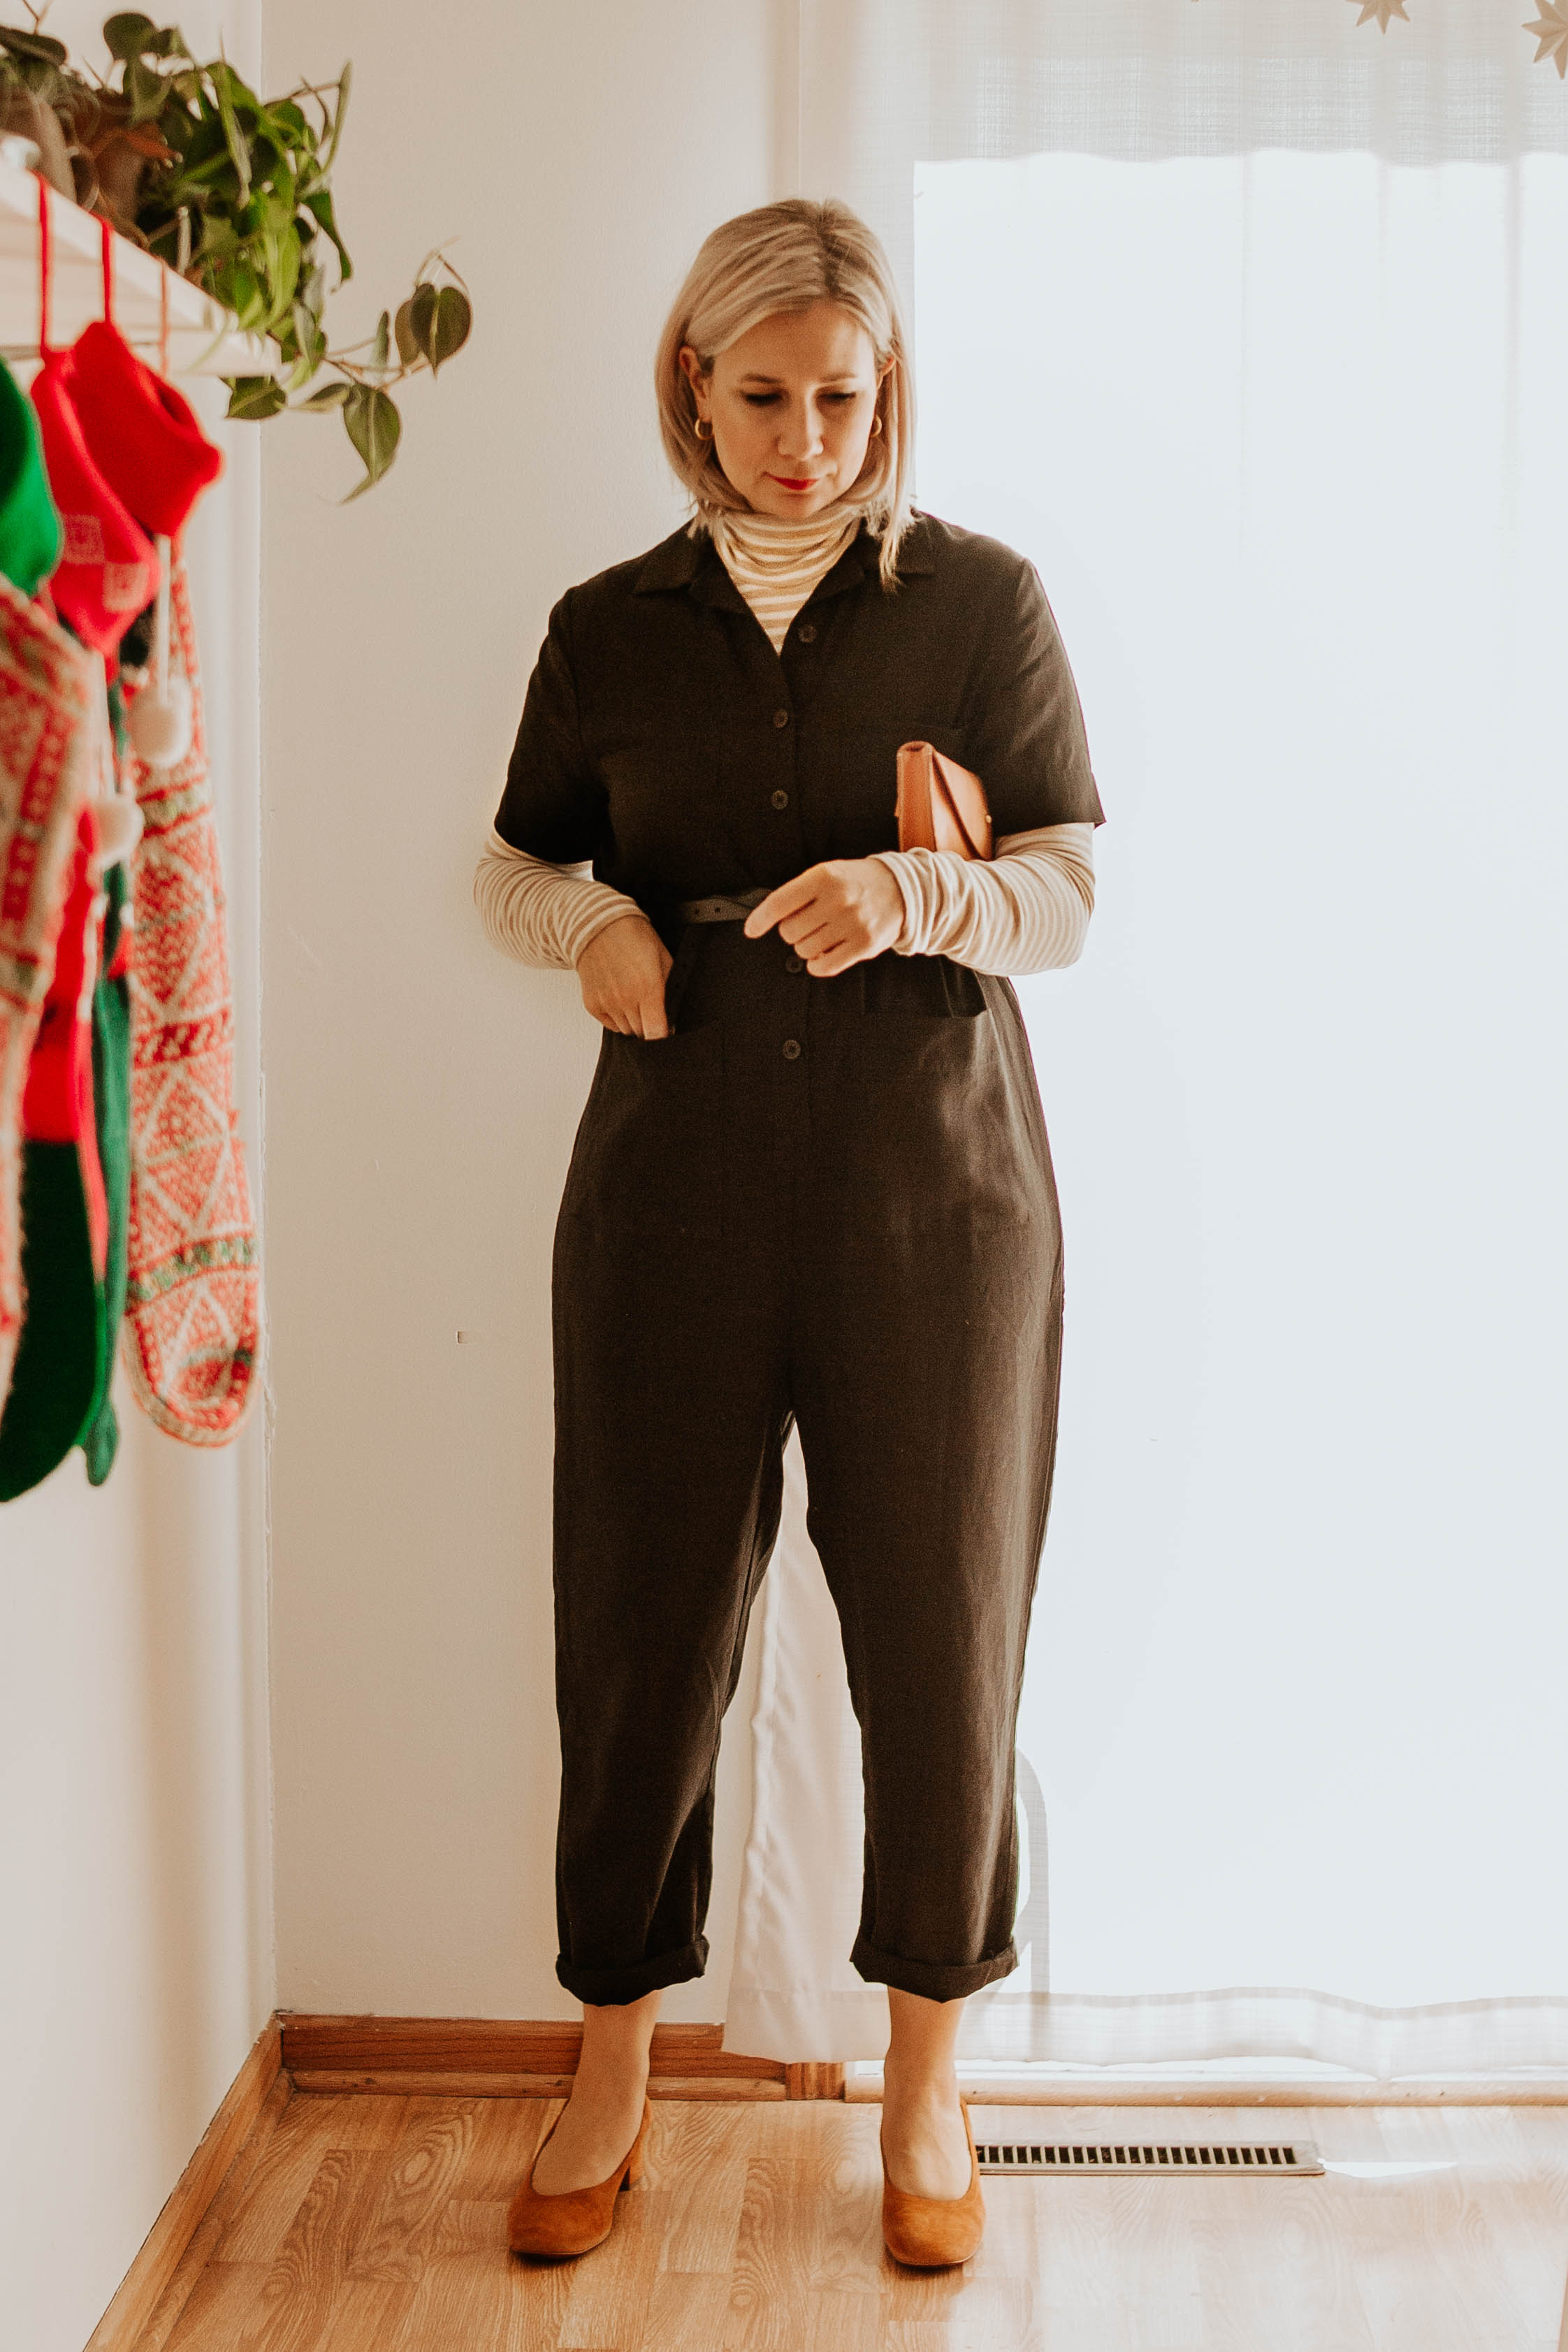 Mini Holiday Lookbook Featuring Ethical Fashion, tradlands jumpsuit, black short sleeve jumpsuit, everlane day heels, striped turtleneck, turtleneck under jumpsuit, tree fairfax bum bag, belt bag